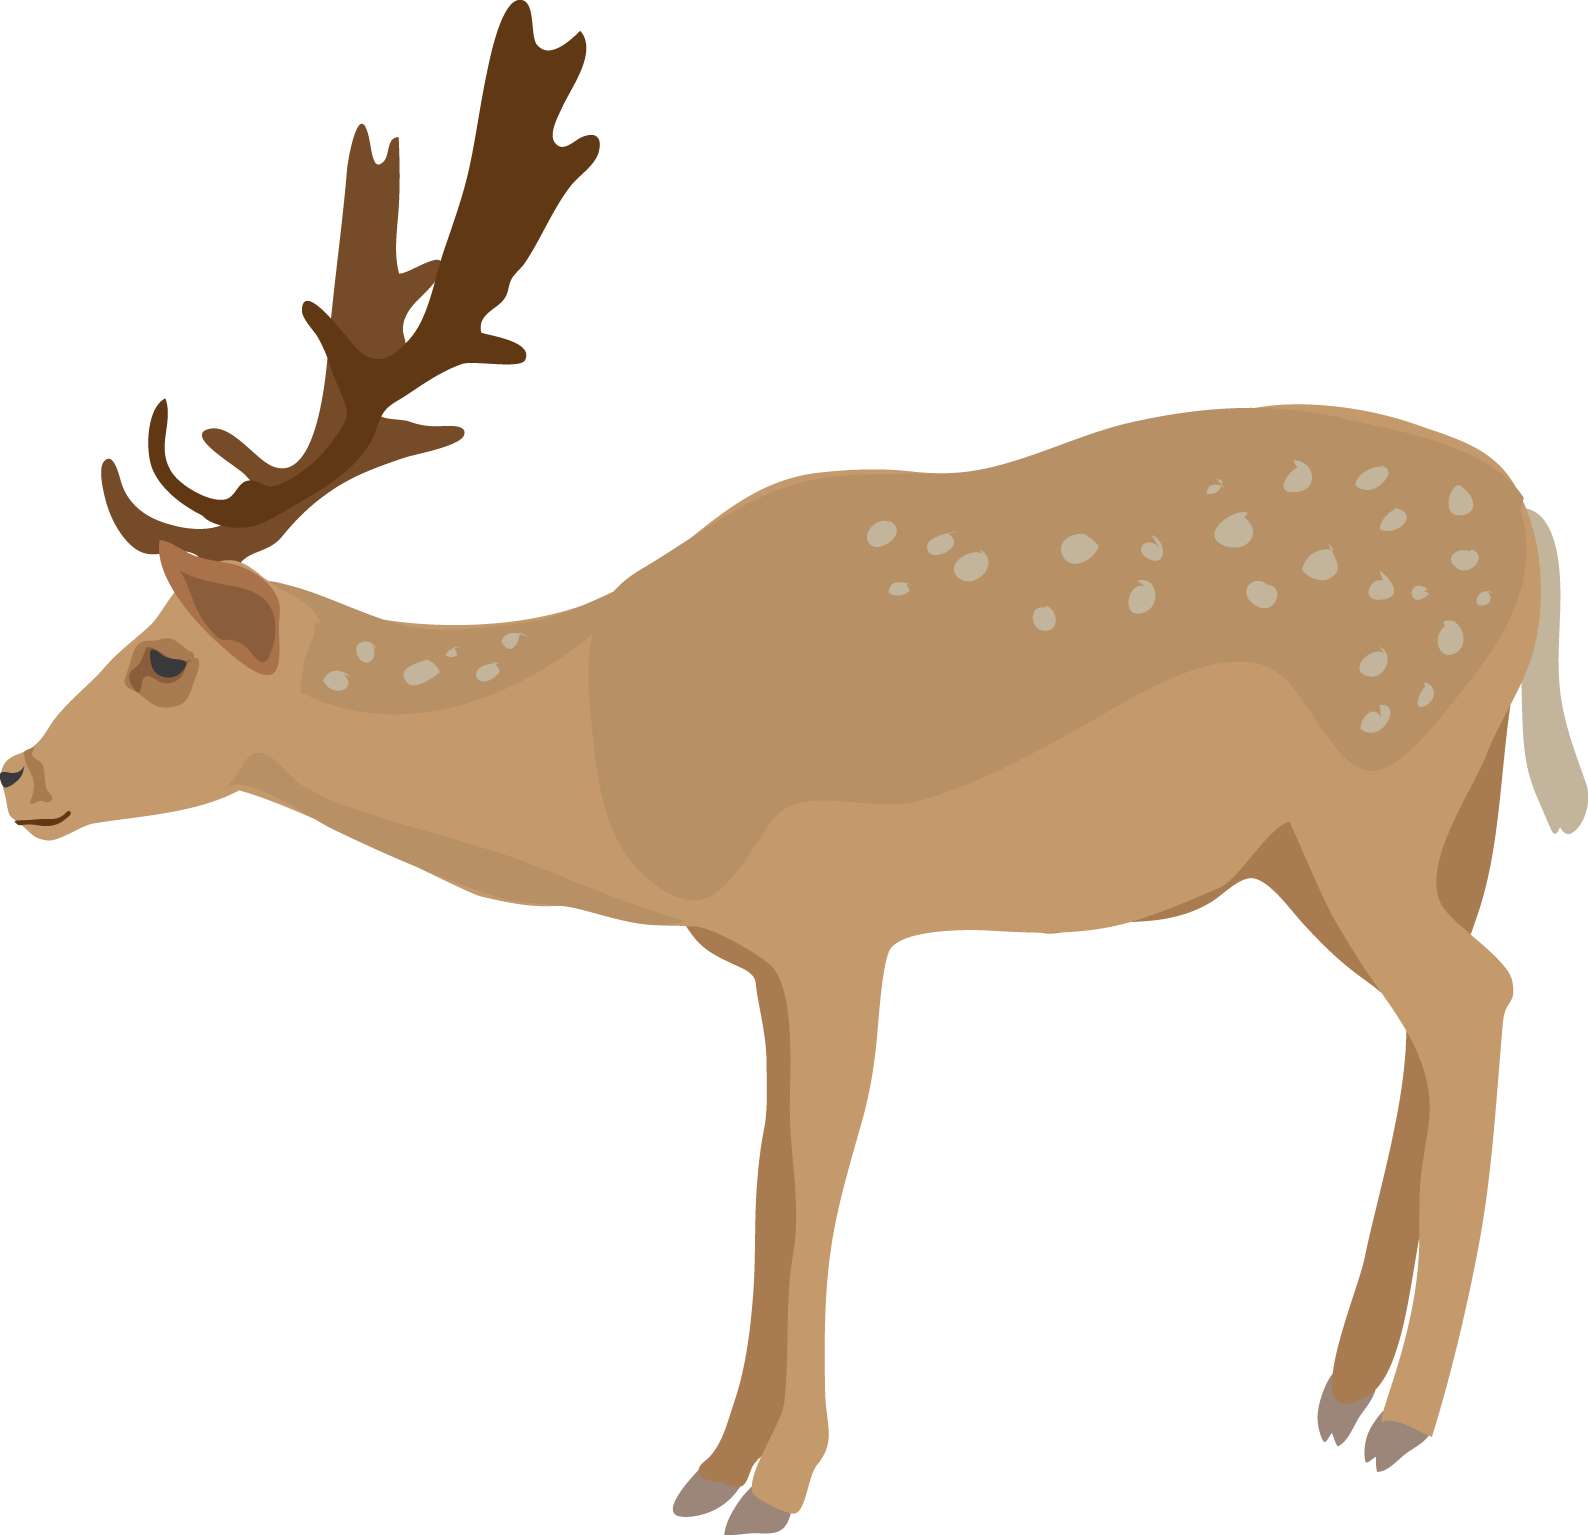 royalty free stock Drinking png collection of. Vector polygon deer